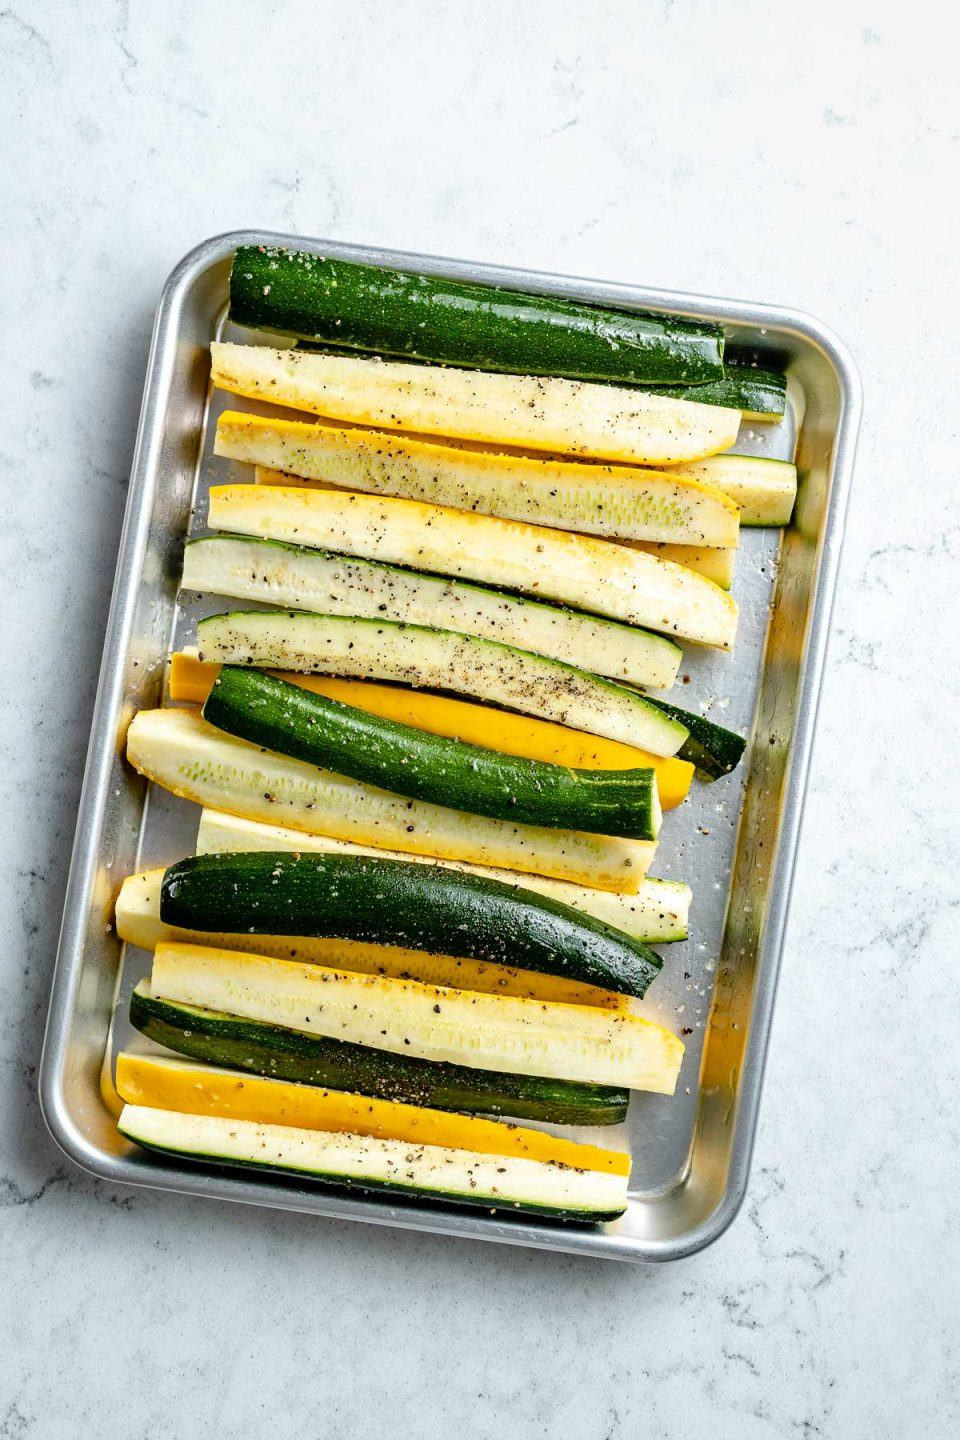 Fresh & raw zucchini and yellow squash spears seasoned with avocado oil, kosher salt, & ground black pepper arranged on an aluminum baking sheet. The baking sheet sits on top of a white & gray marble surface.